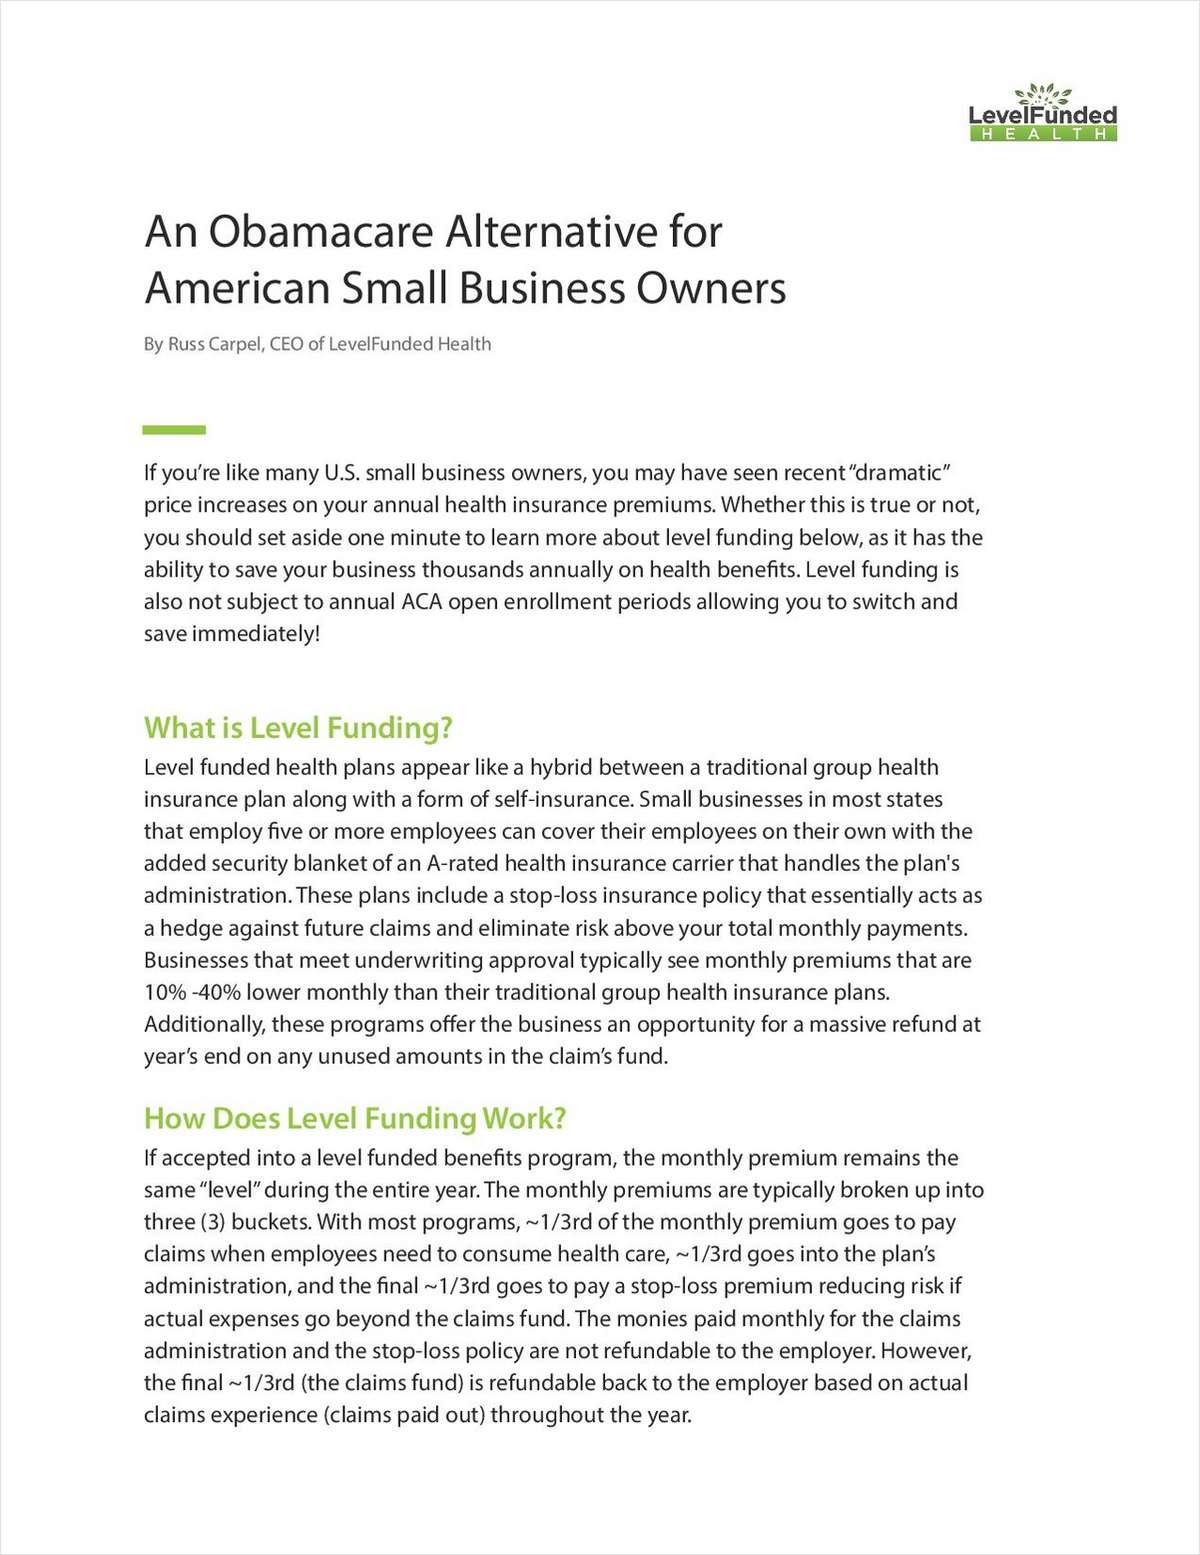 An Obamacare Alternative for Small Business Owners